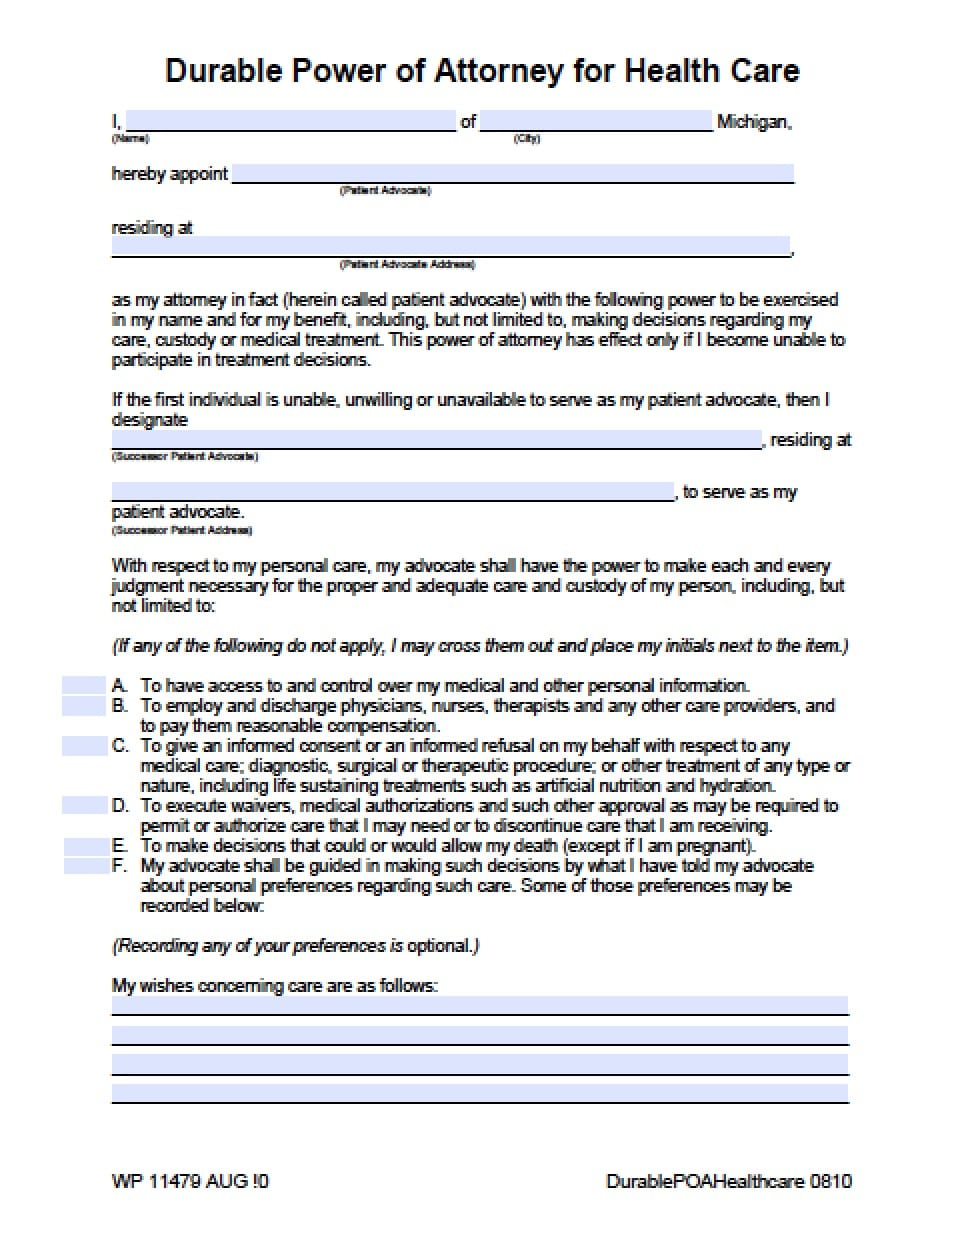 Michigan Medical Power of Attorney Form - Power of Attorney ...